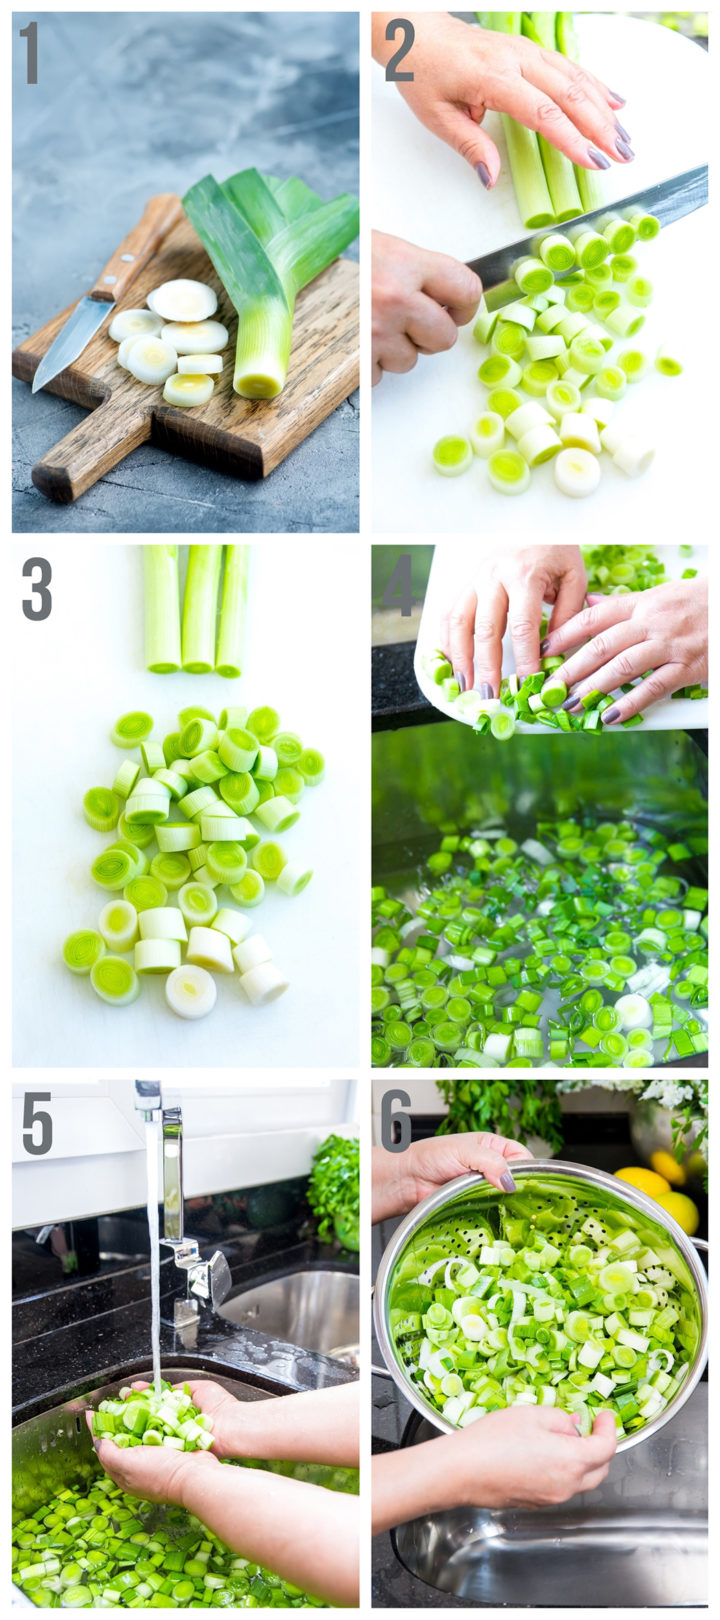 step by step photos of how to clean leeks